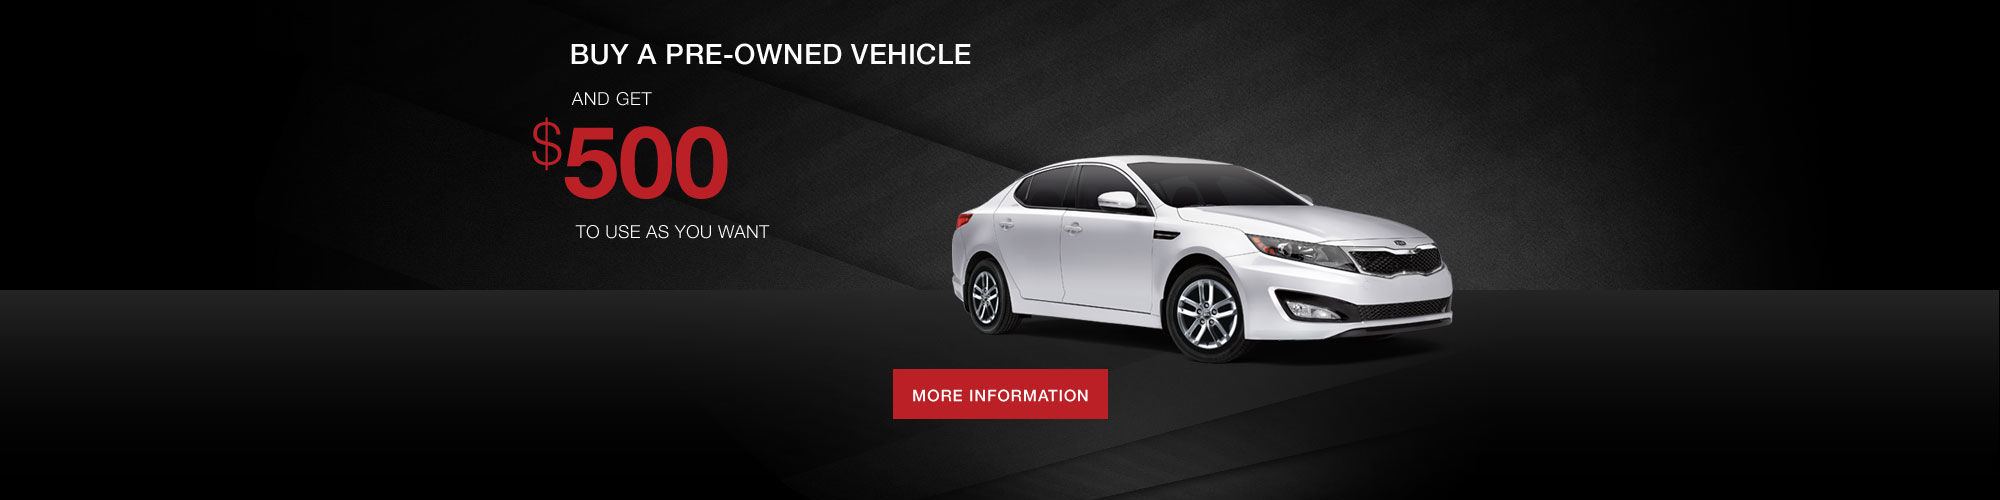 Kia Pre-Owned Promotion